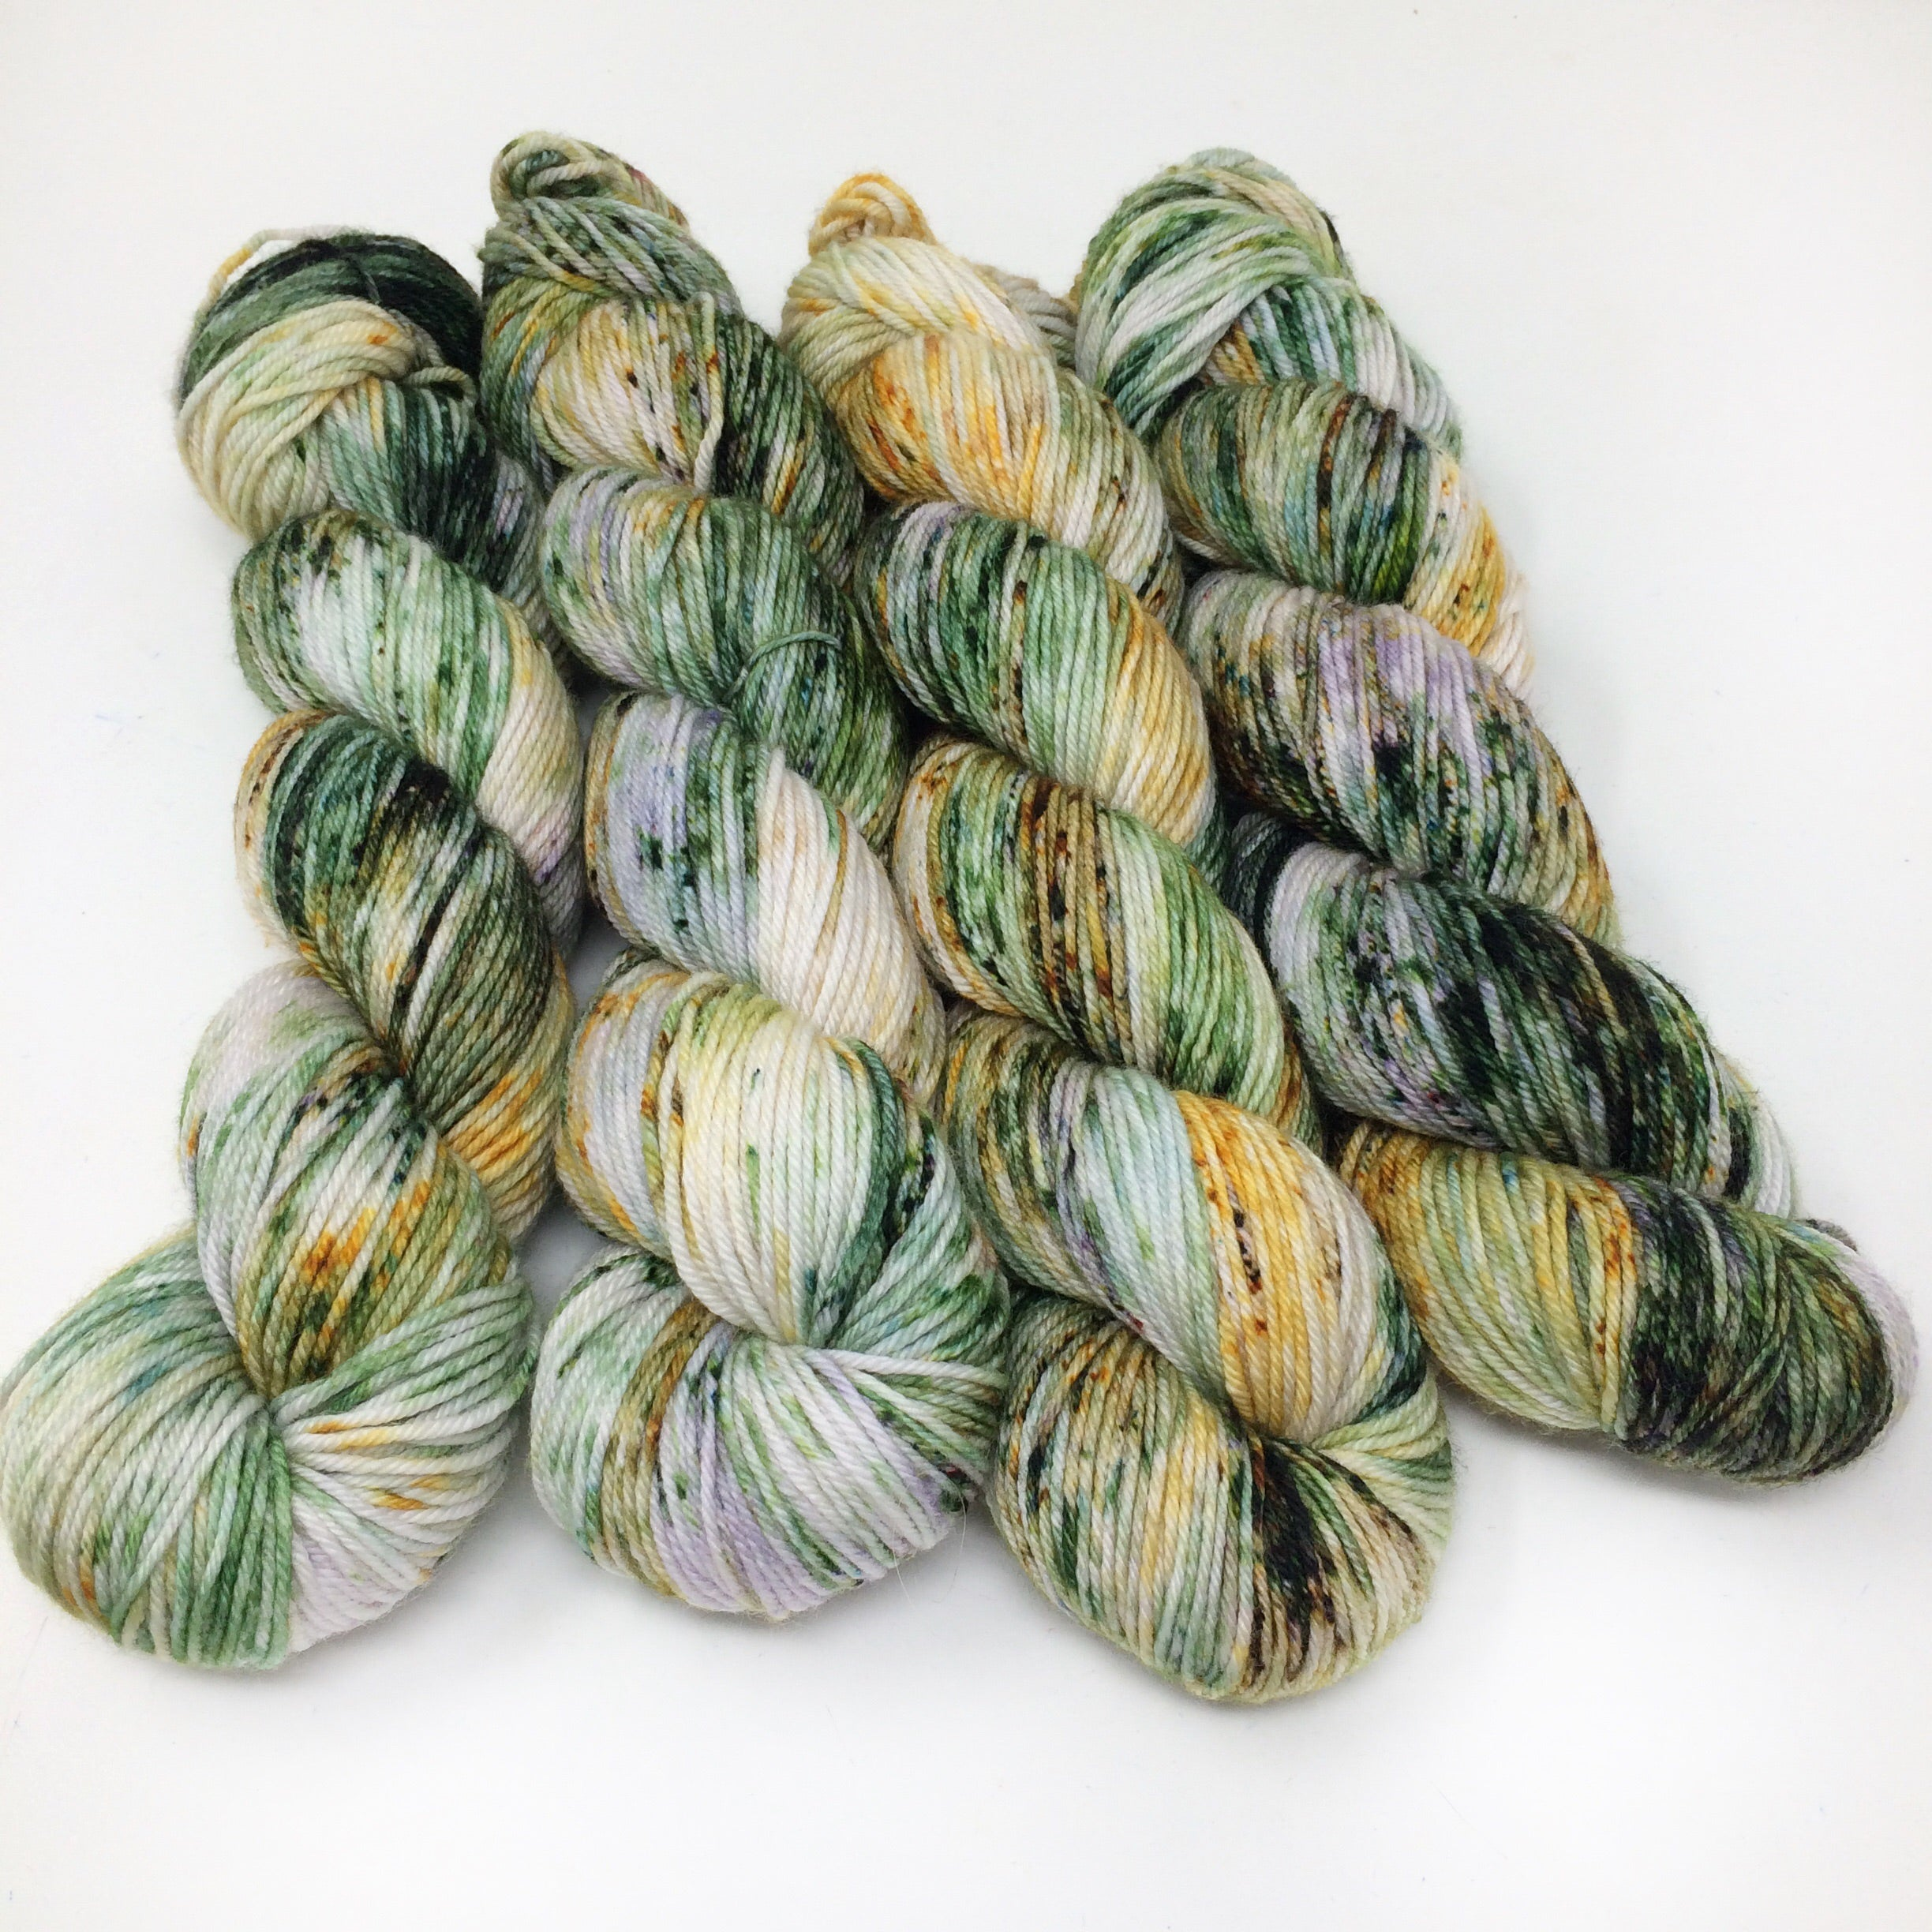 Appalachia - Delightful DK - the perfect sweater yarn